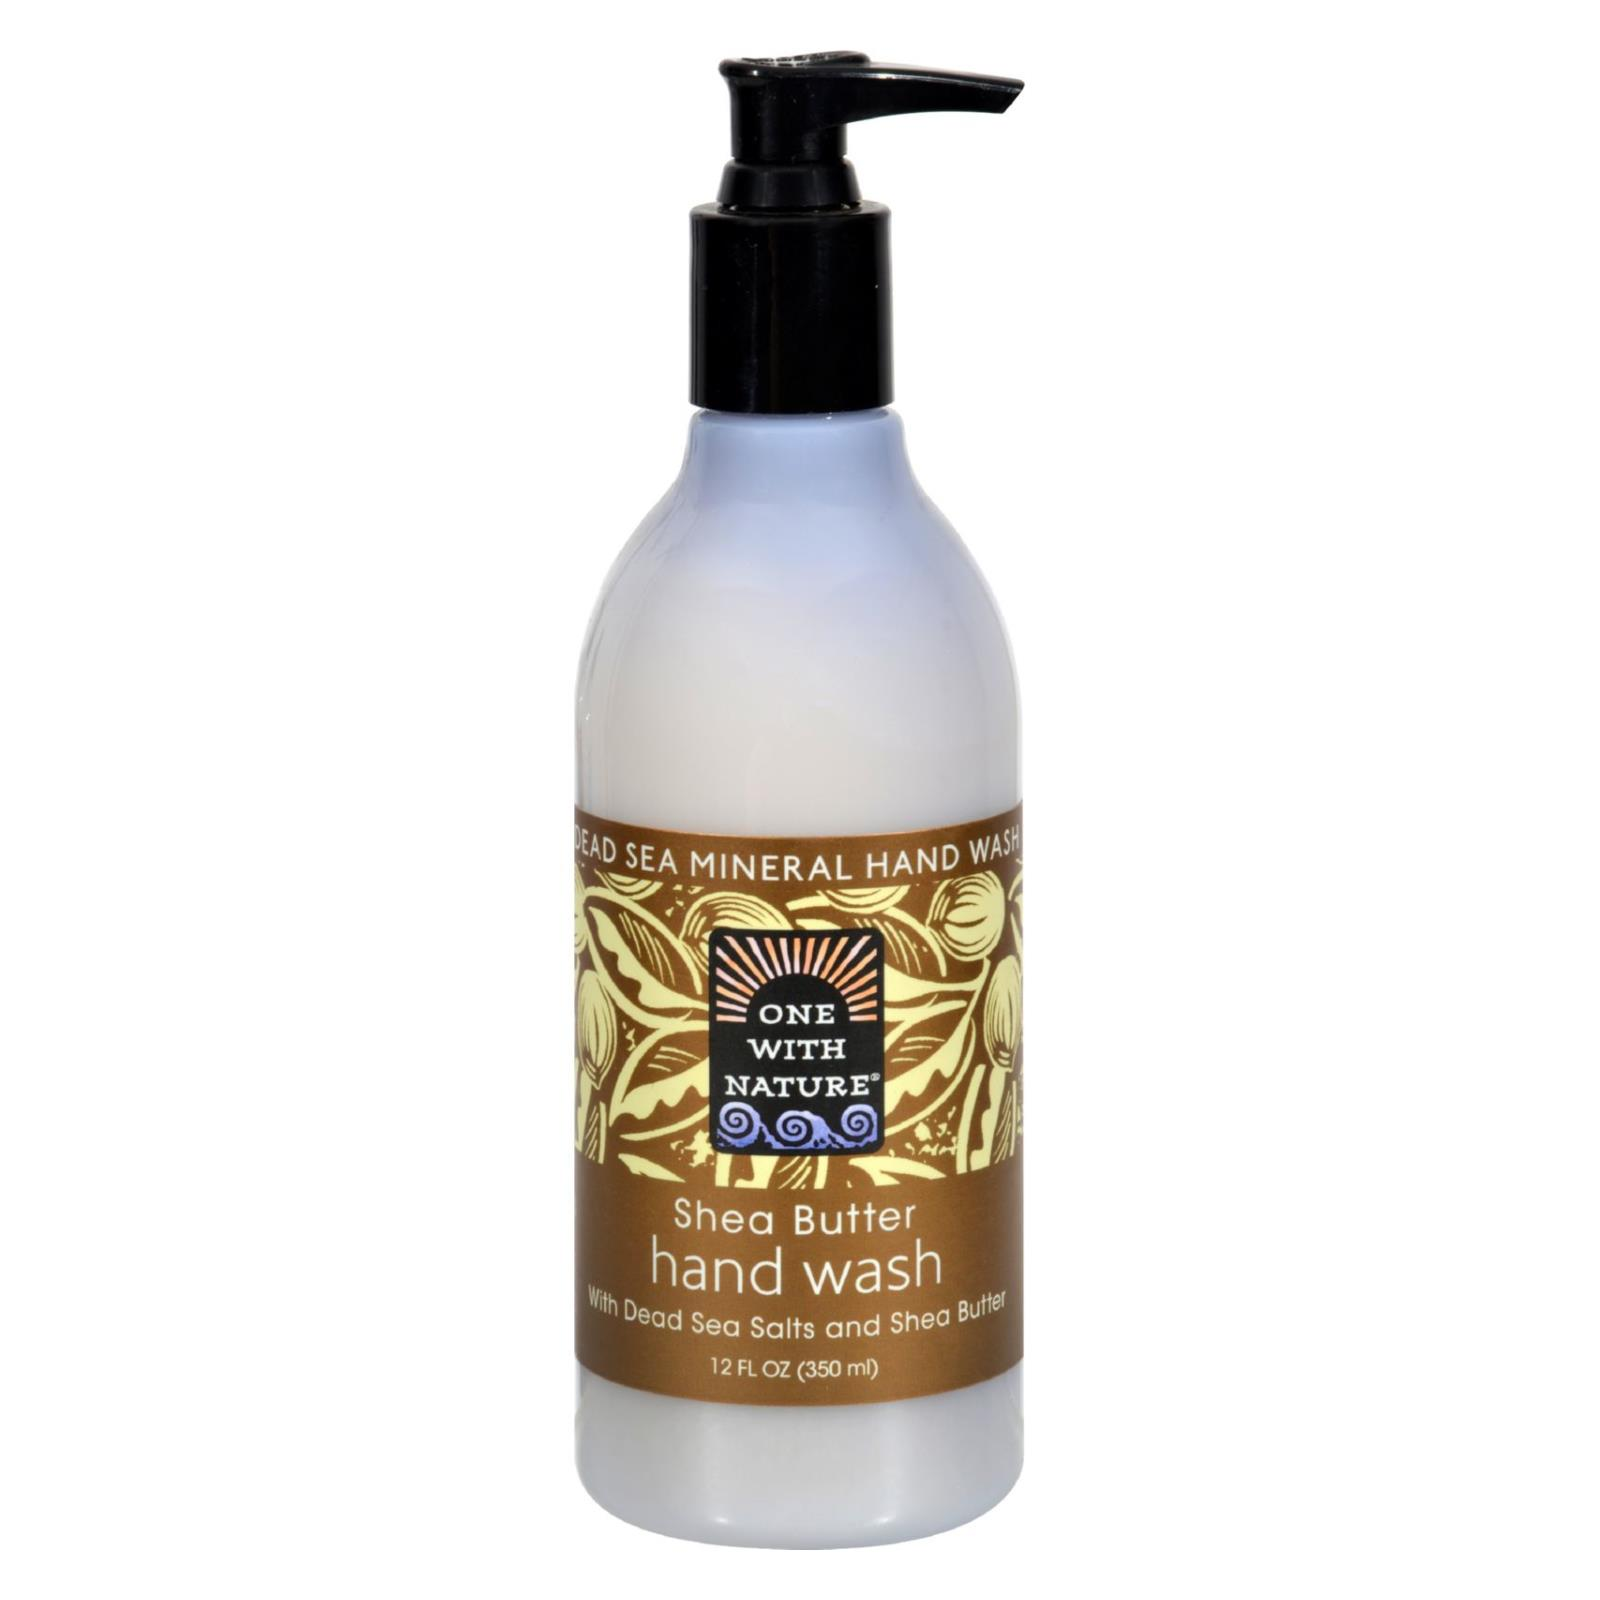 One With Nature Dead Sea Mineral Moisturizing Hand Wash Shea Butter - 12 fl oz